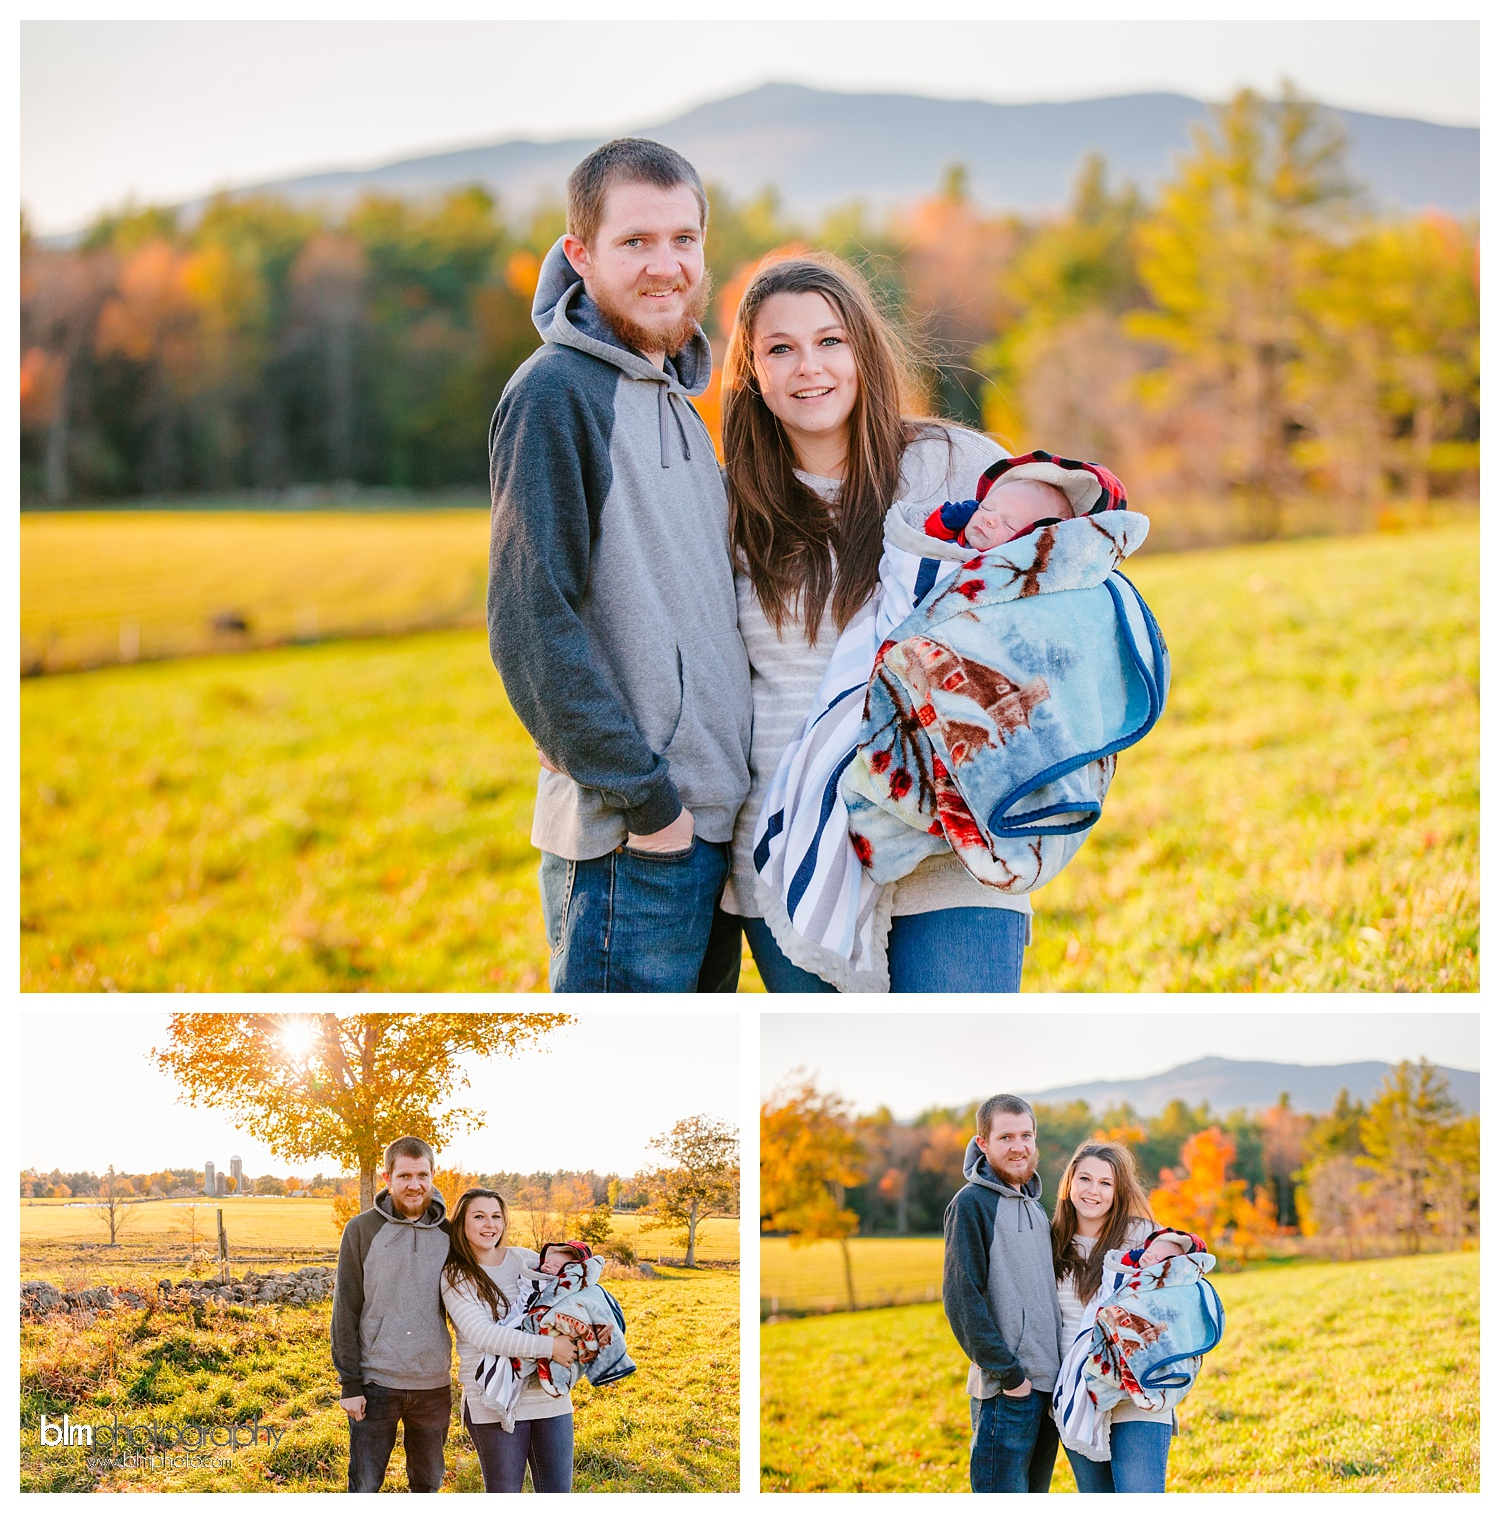 Alisa Sawyer,BLM,Brantley Cullinane,Brianna Morrissey,Brie Morrissey,Candid,Cullinane Family,Cullinane-Family,Fall Family Portraits,Family Photography,Family Portraits,Lifestyle,Lifestyle Family Photography,Natural Light,Newborn,Oct,October,Outdoor Photography,Photo,Photographer,Photography,Sawyer Farm,Tyler Cullinane,www.blmphoto.com/contact,©BLM Photography 2018,